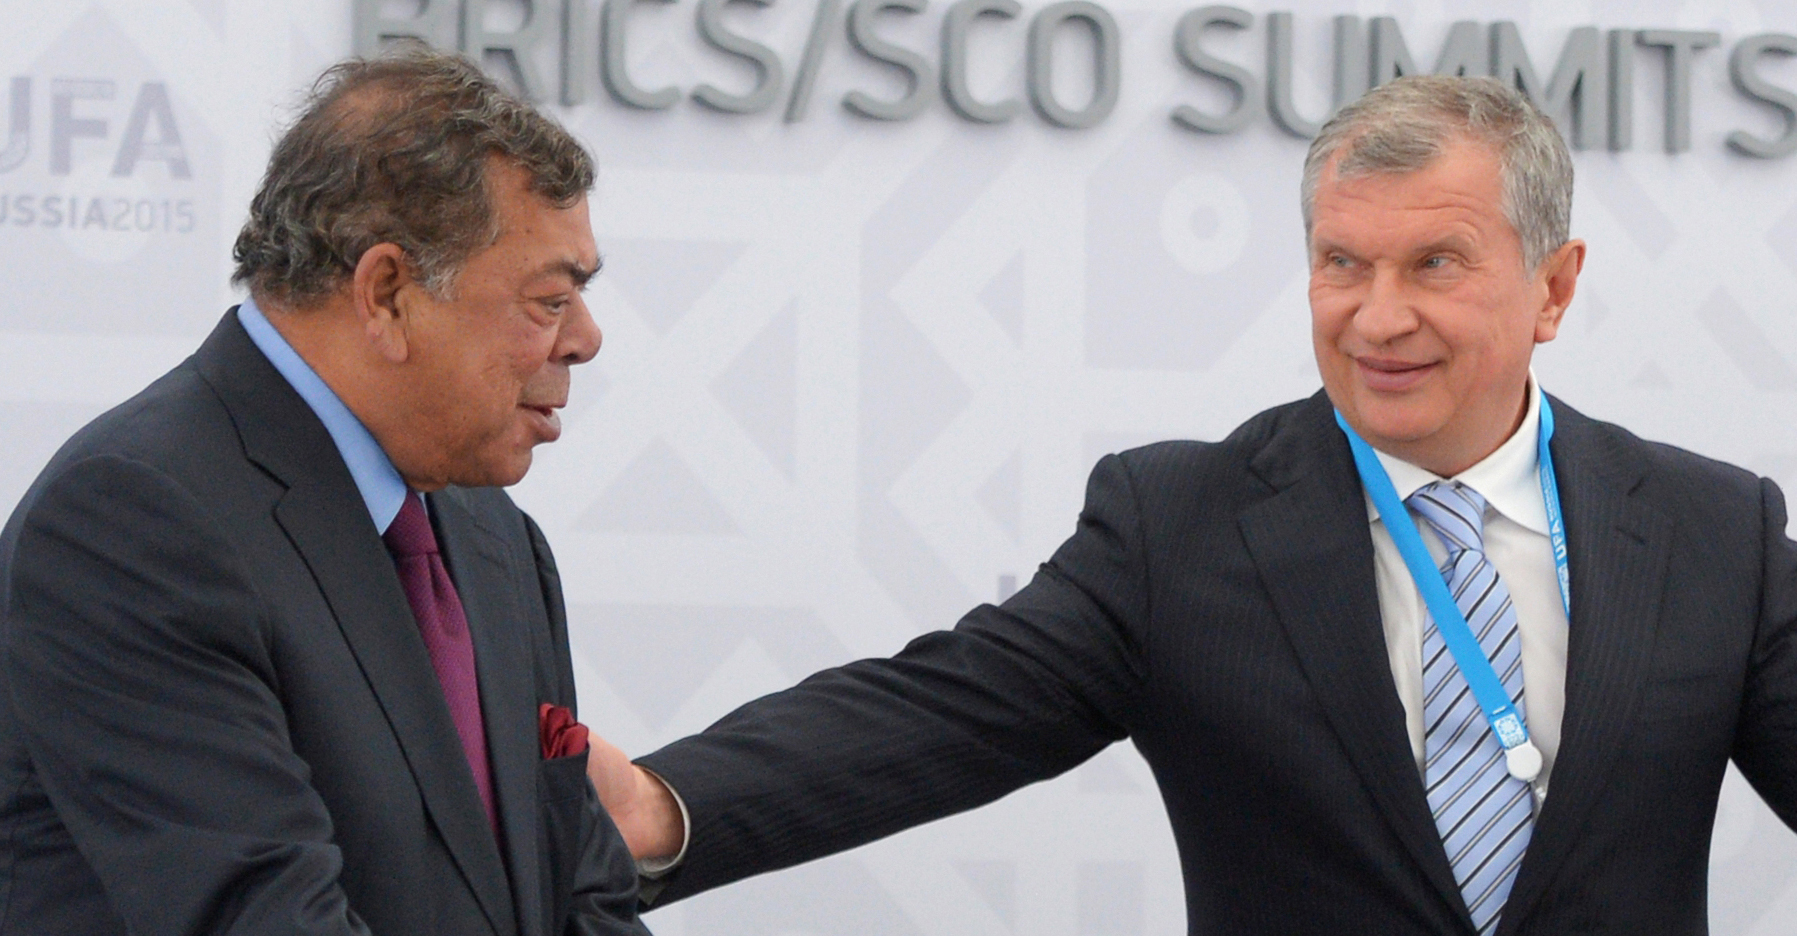 Russia's Rosneft expands presence in India's fuel market | New Europe